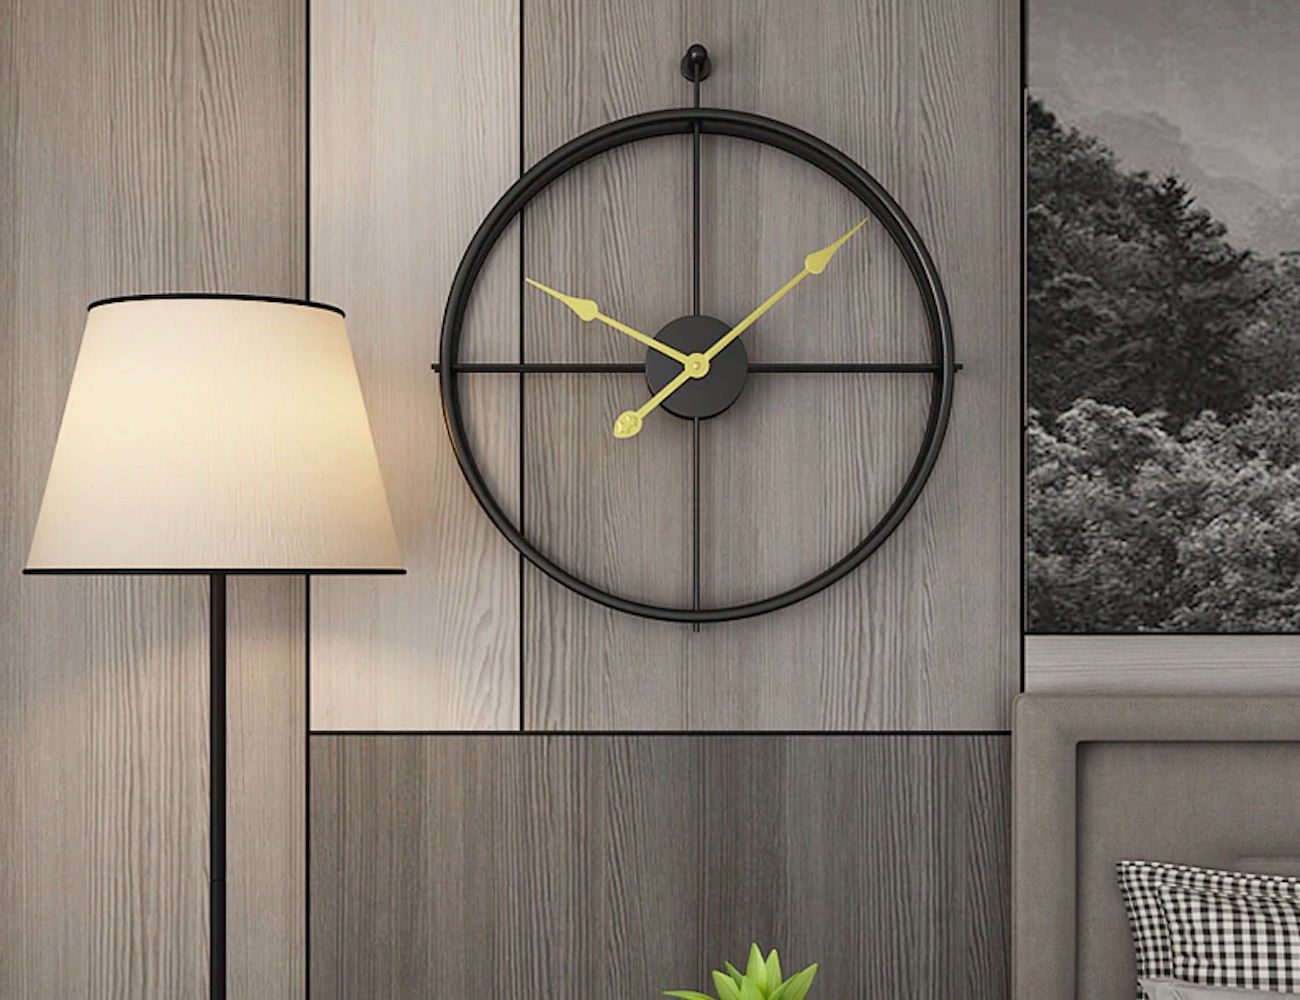 Elegant Geometric Circle Wall Clock adds simplicity to your space